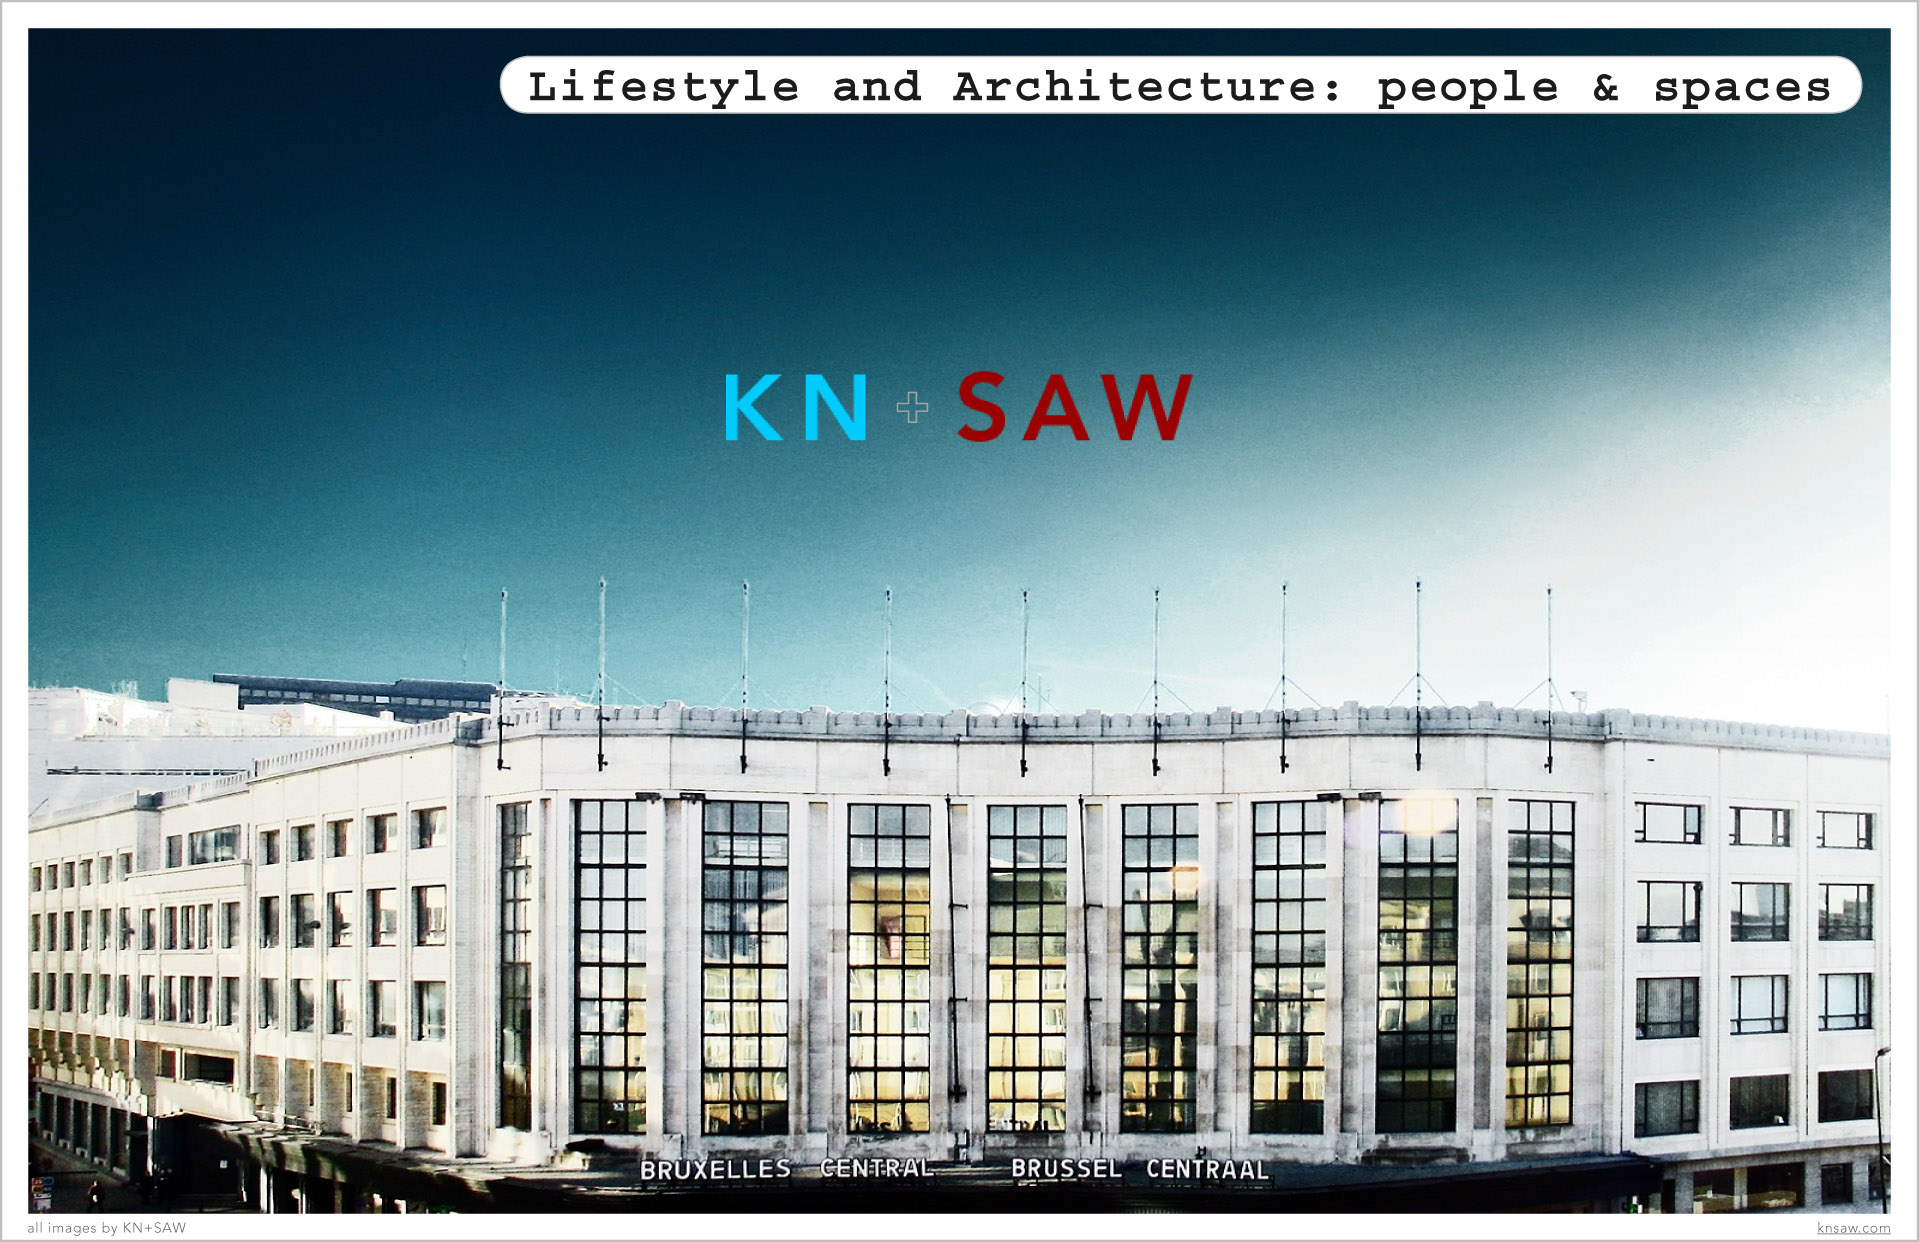 KNSAW-lifestyle_and_architecture-people_and_spaces-01